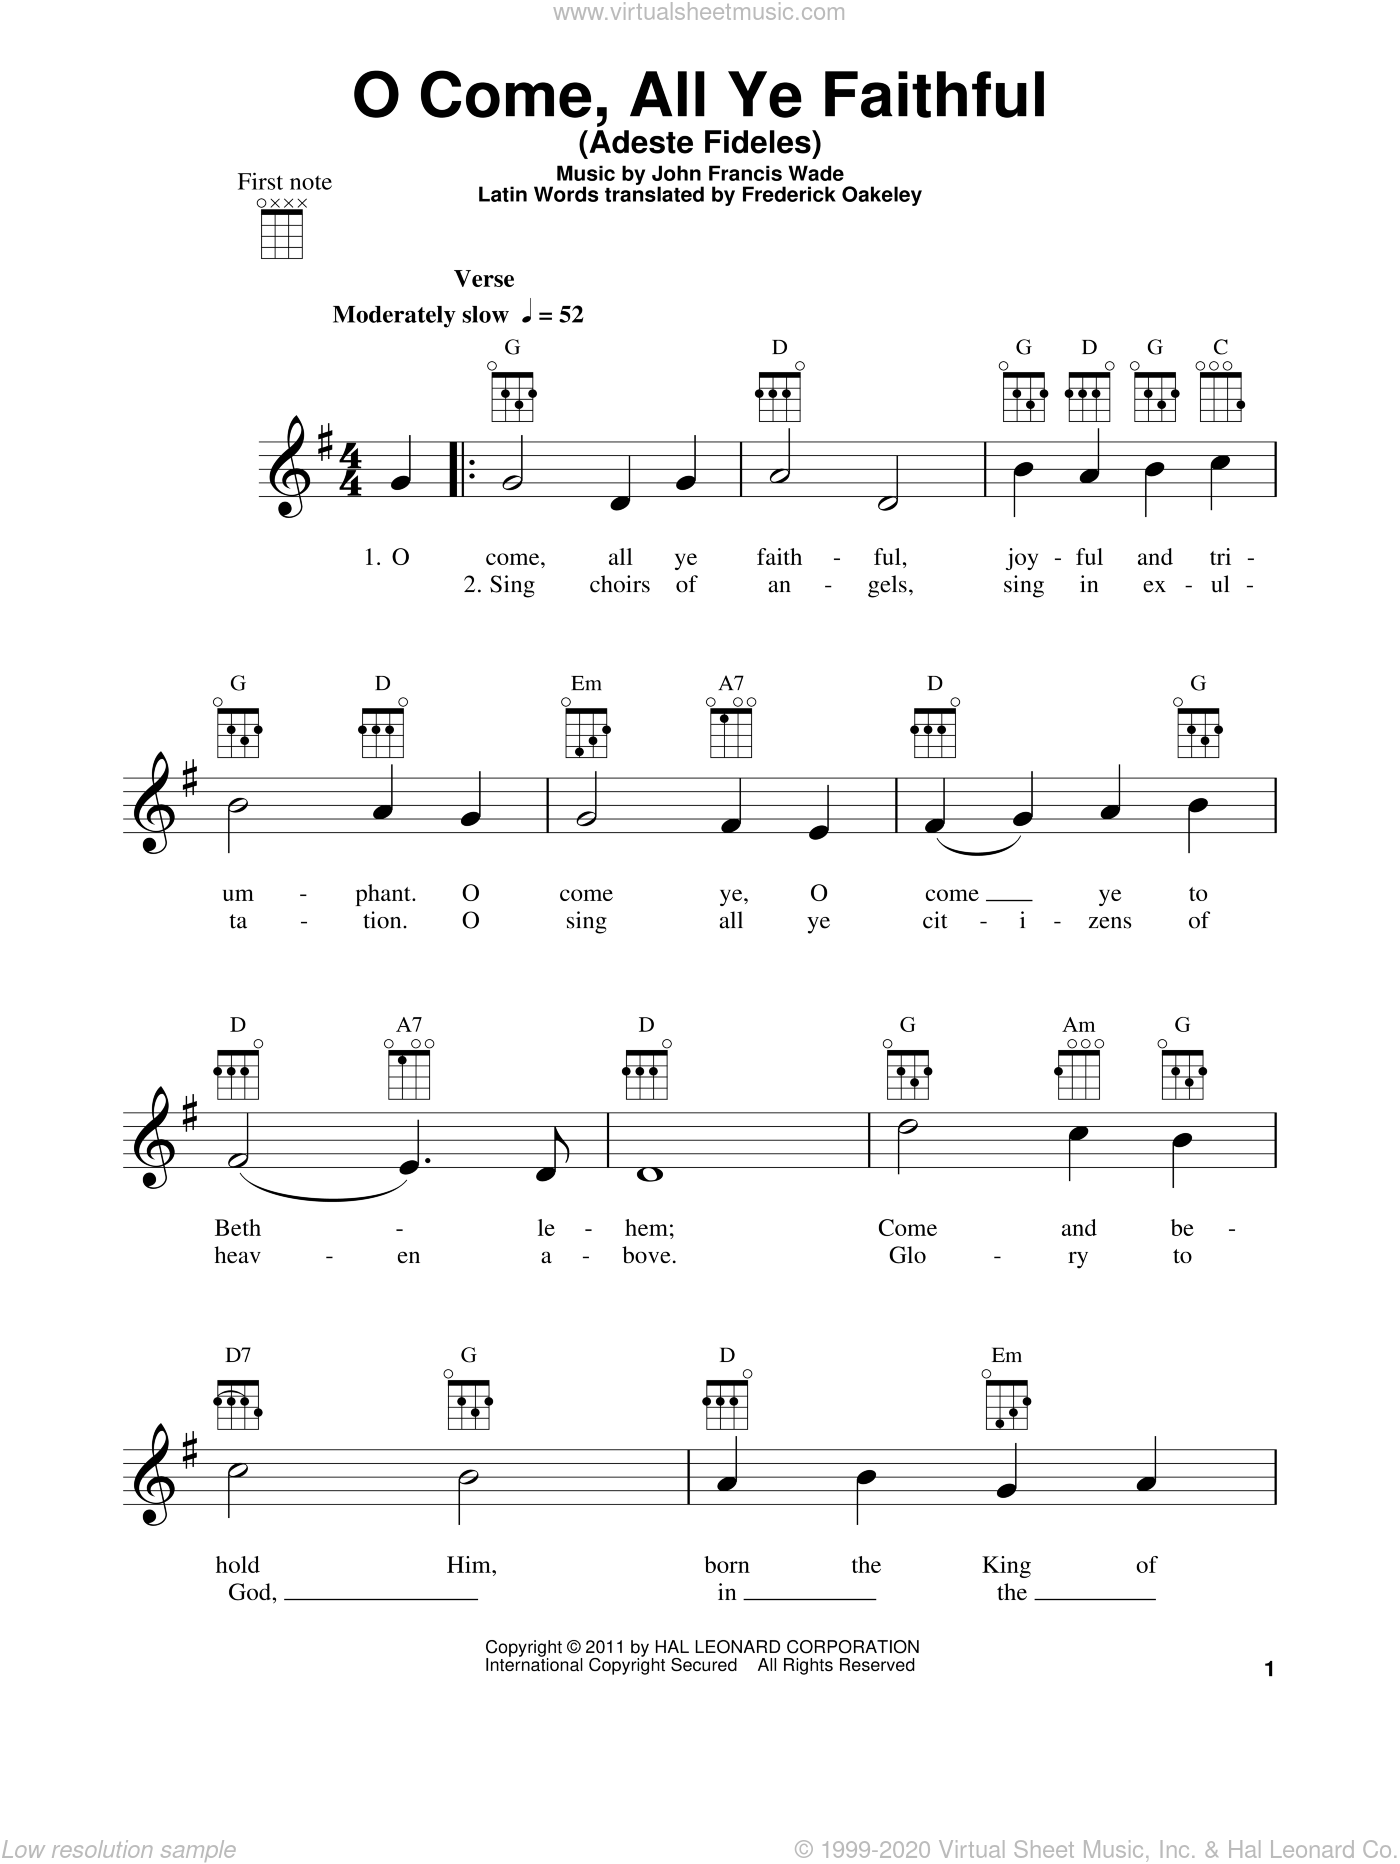 O Come, All Ye Faithful (Adeste Fideles) sheet music for ukulele by John Francis Wade and Frederick Oakeley, intermediate skill level